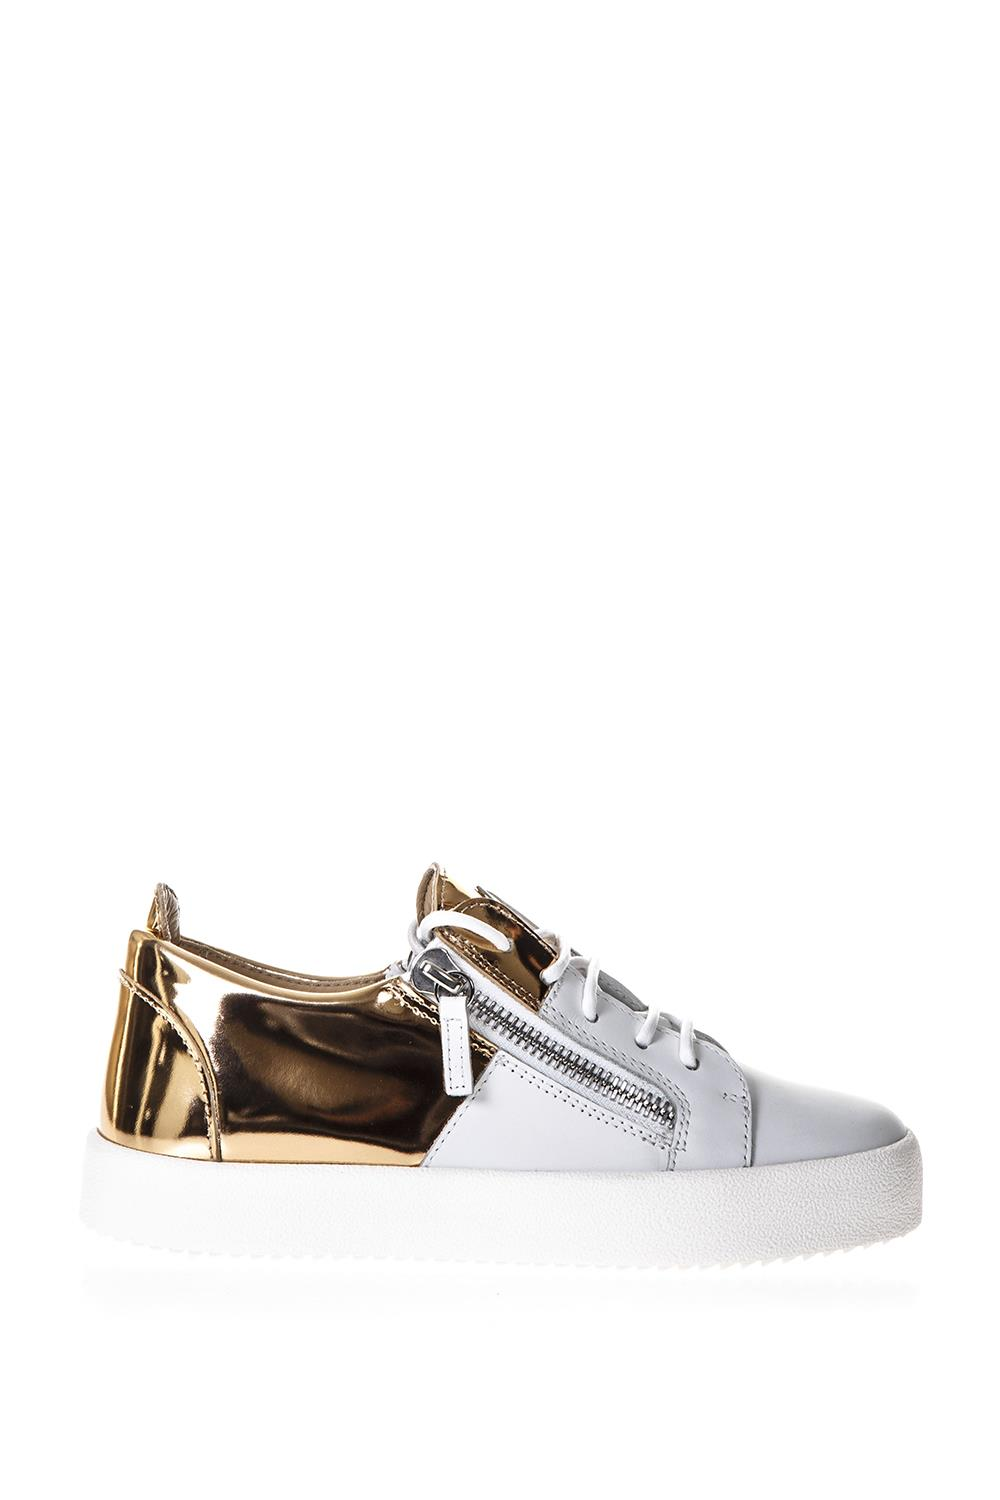 0a2489c88f60 TWO TONE LACED UP LEATHER SNEAKERS SS 2018 - GIUSEPPE ZANOTTI - Boutique  Galiano